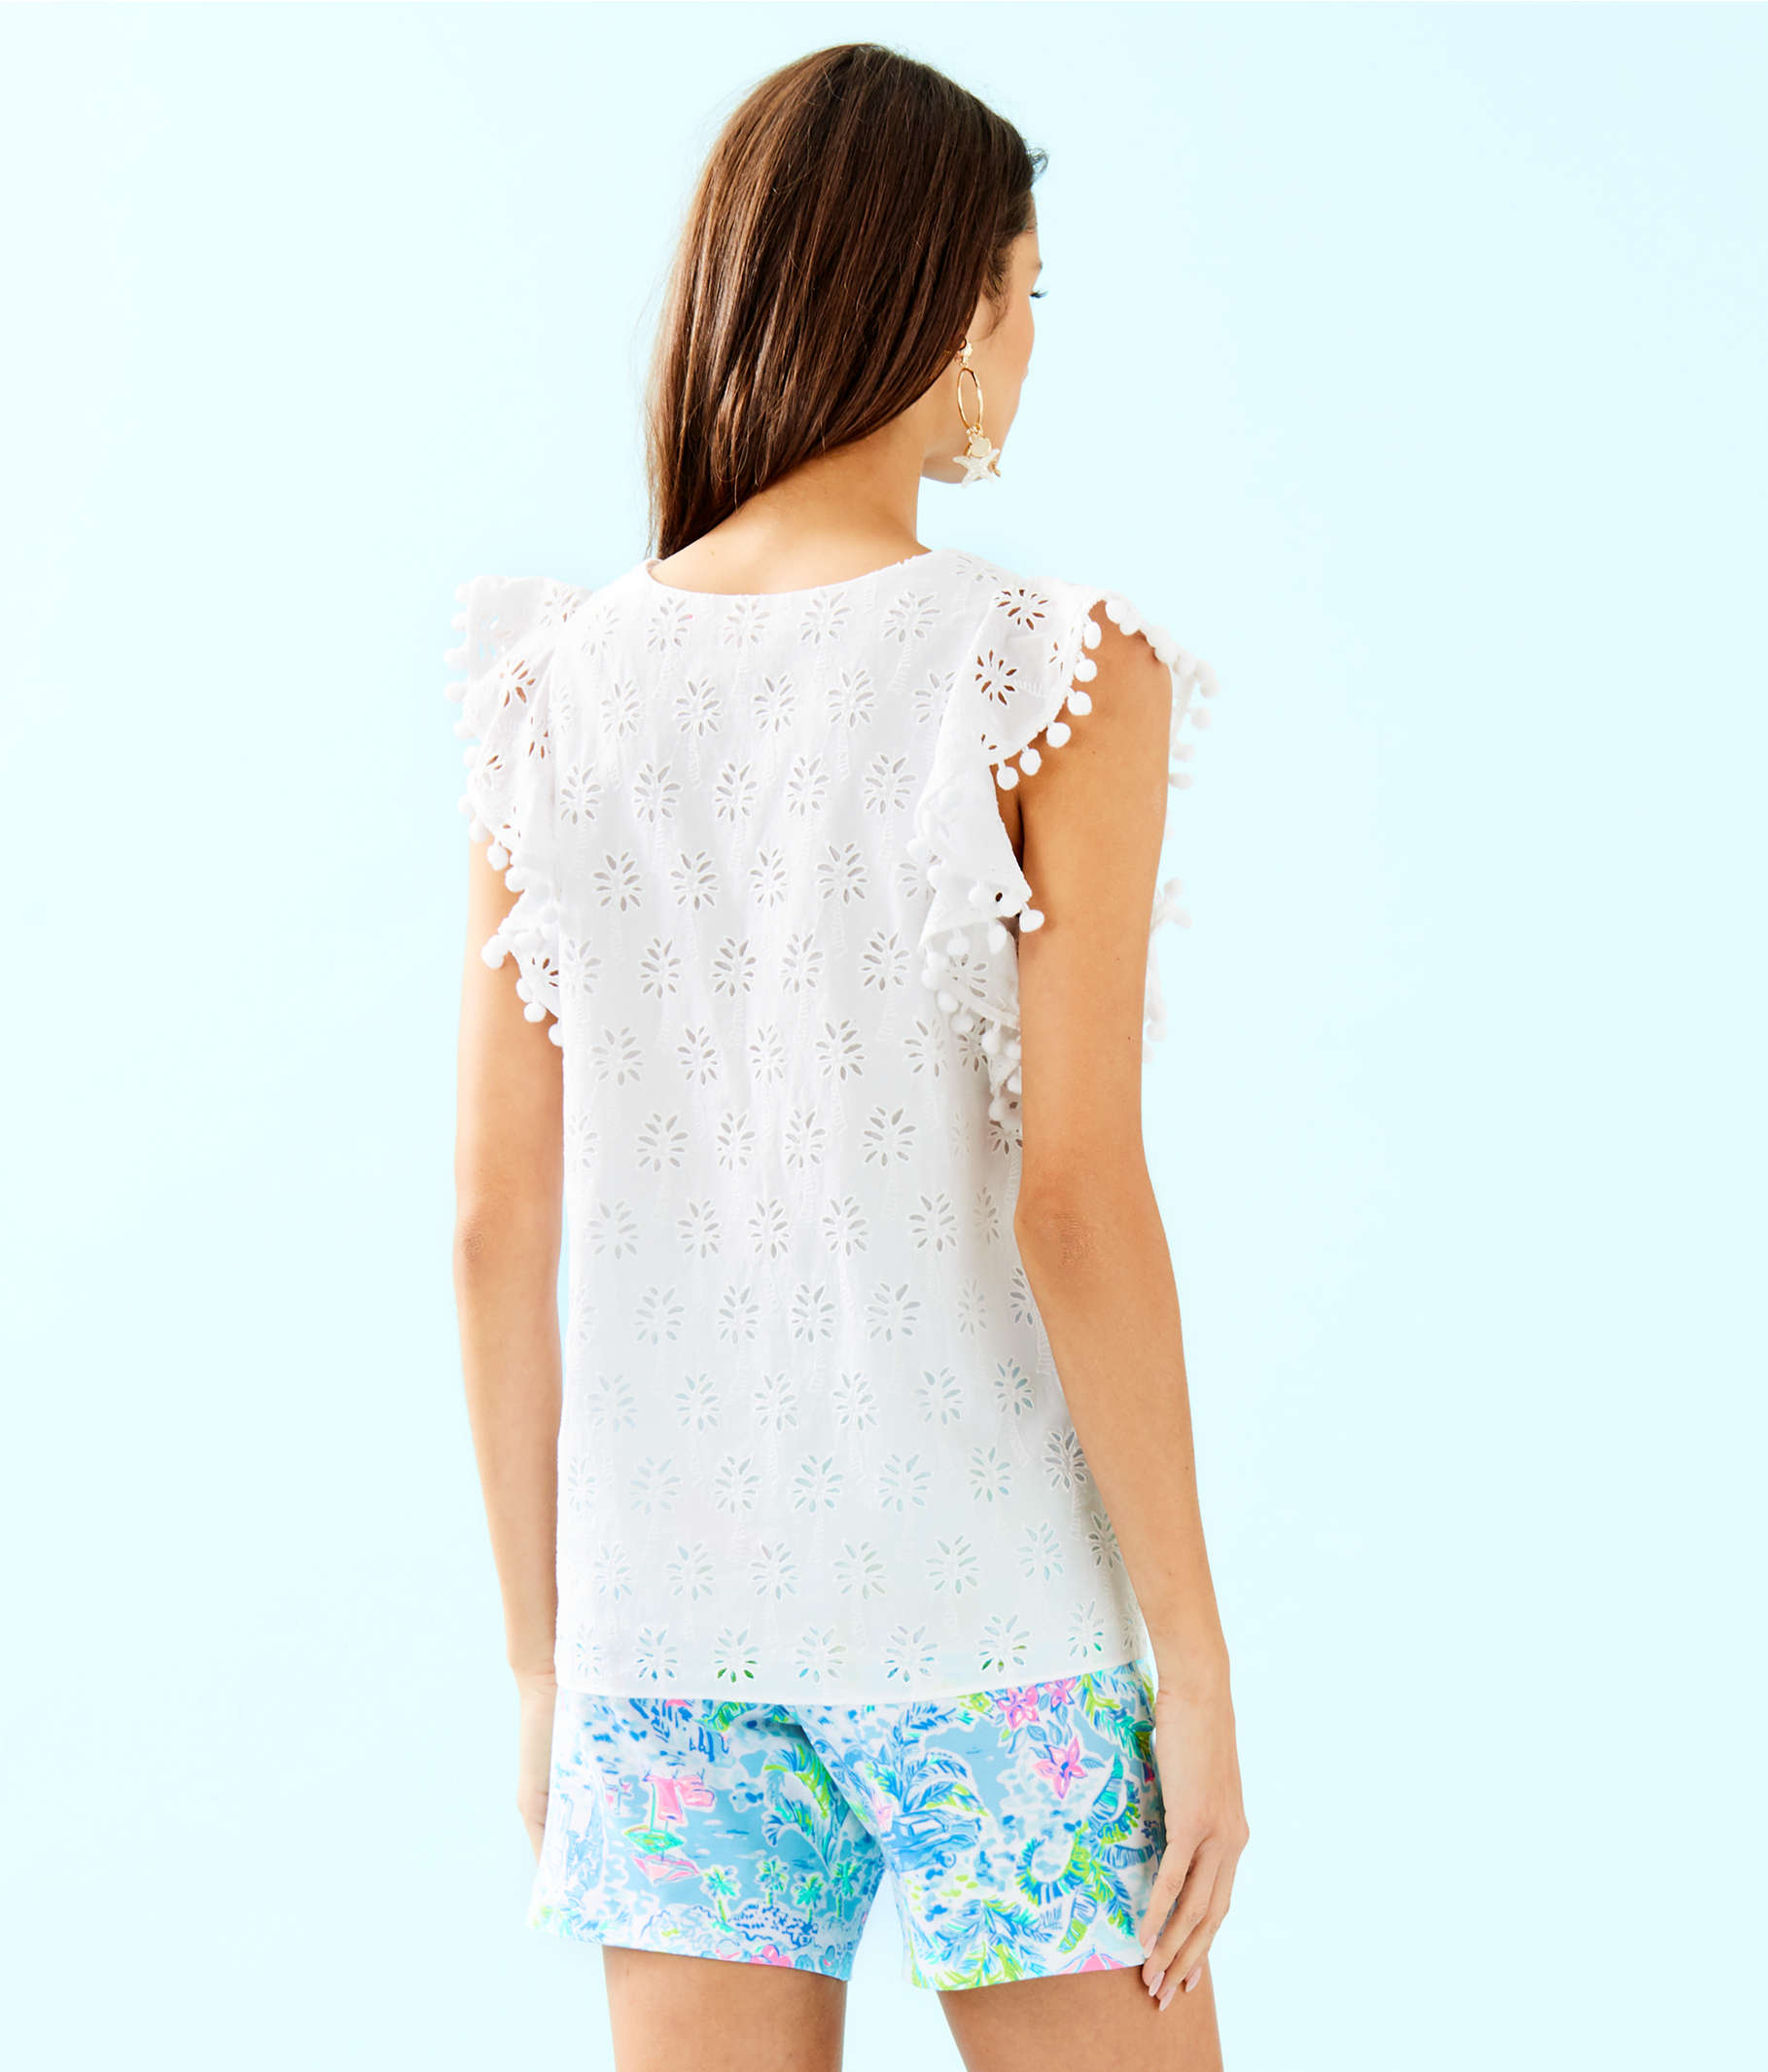 d8921d038bfb0e Astara Eyelet Top, Resort White Lilly Palm Tree Eyelet, large ...